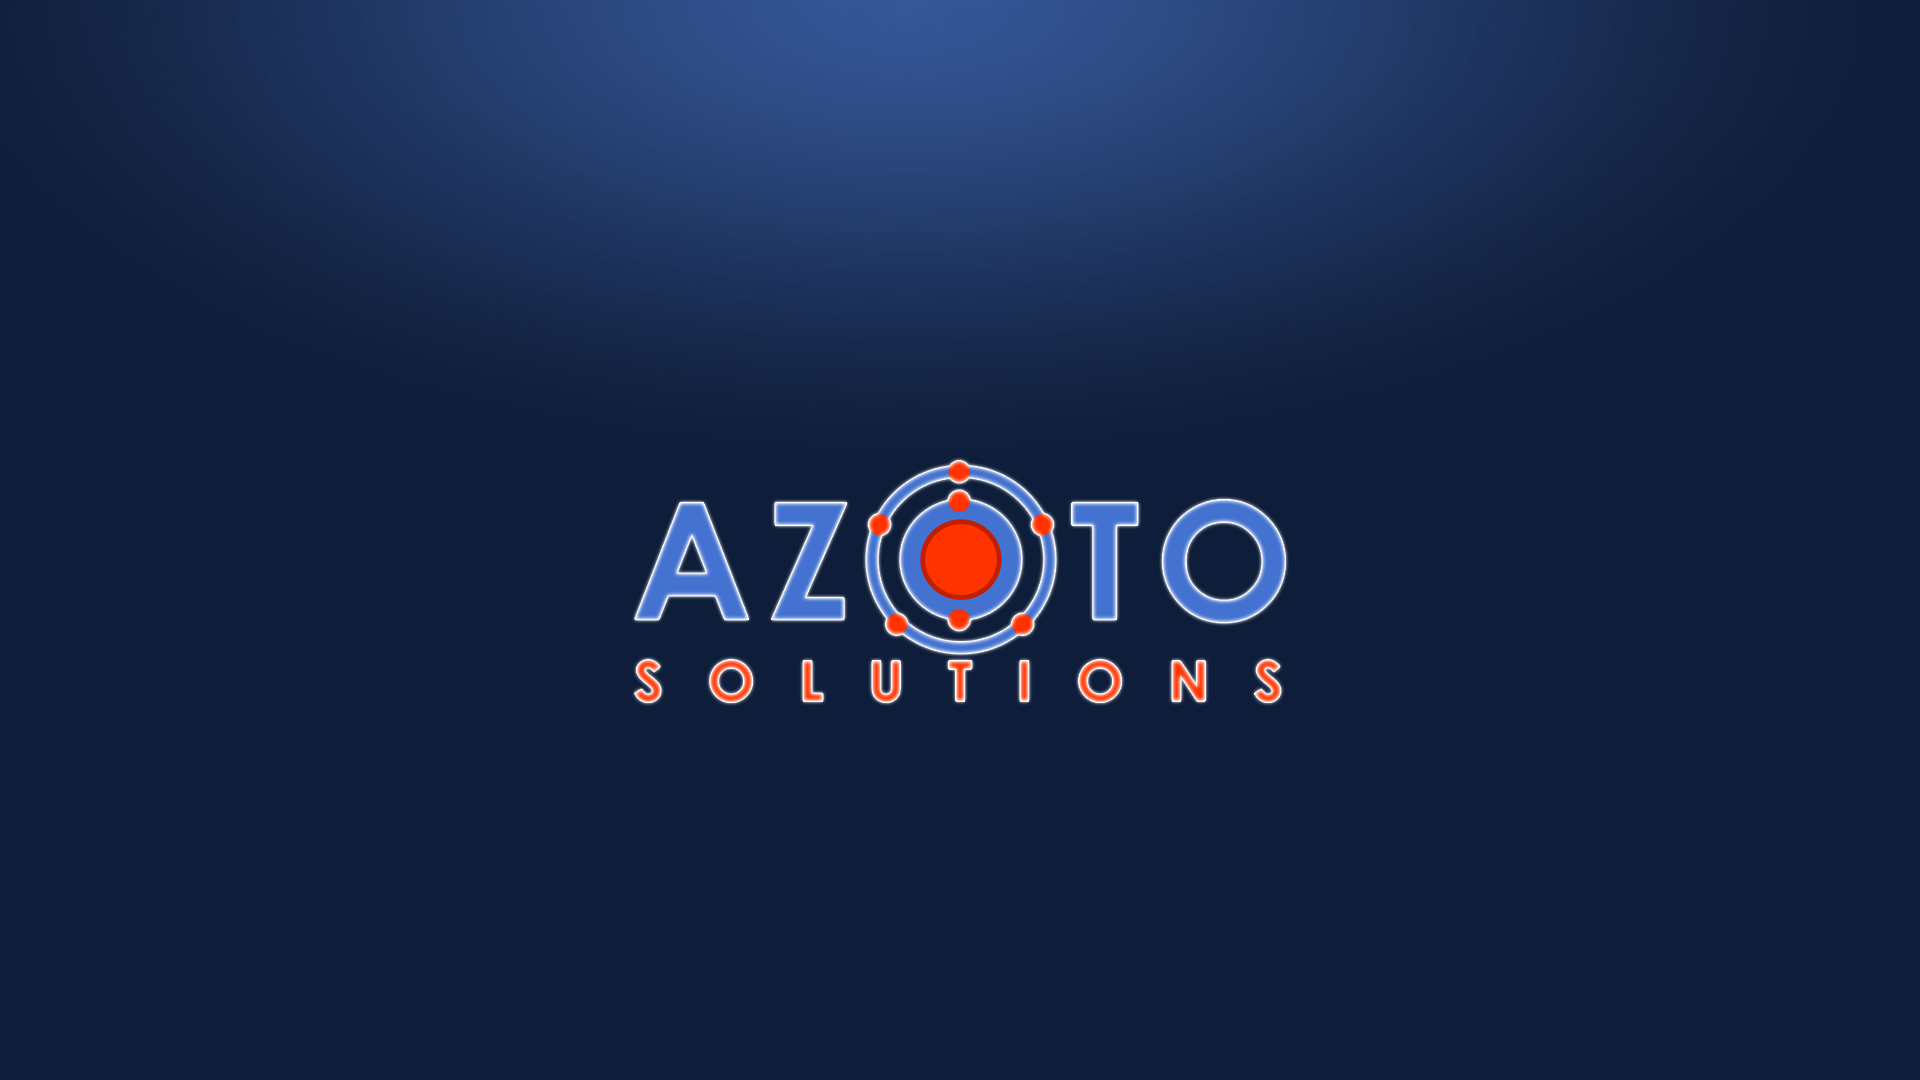 Azotosolutions